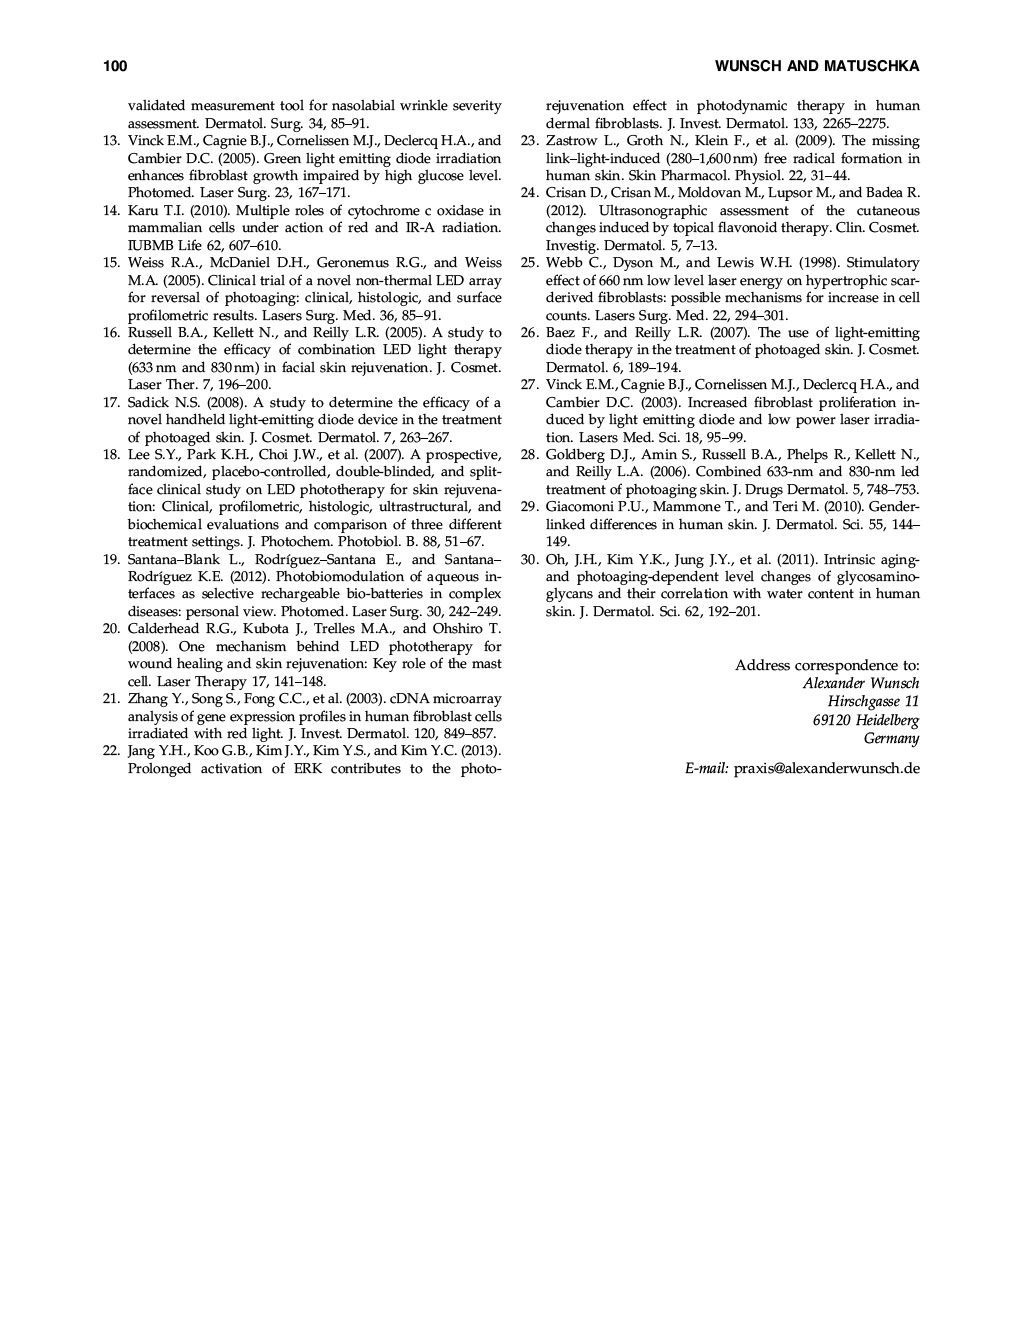 Efficacy of Red Near Infrared Light Treatment 8